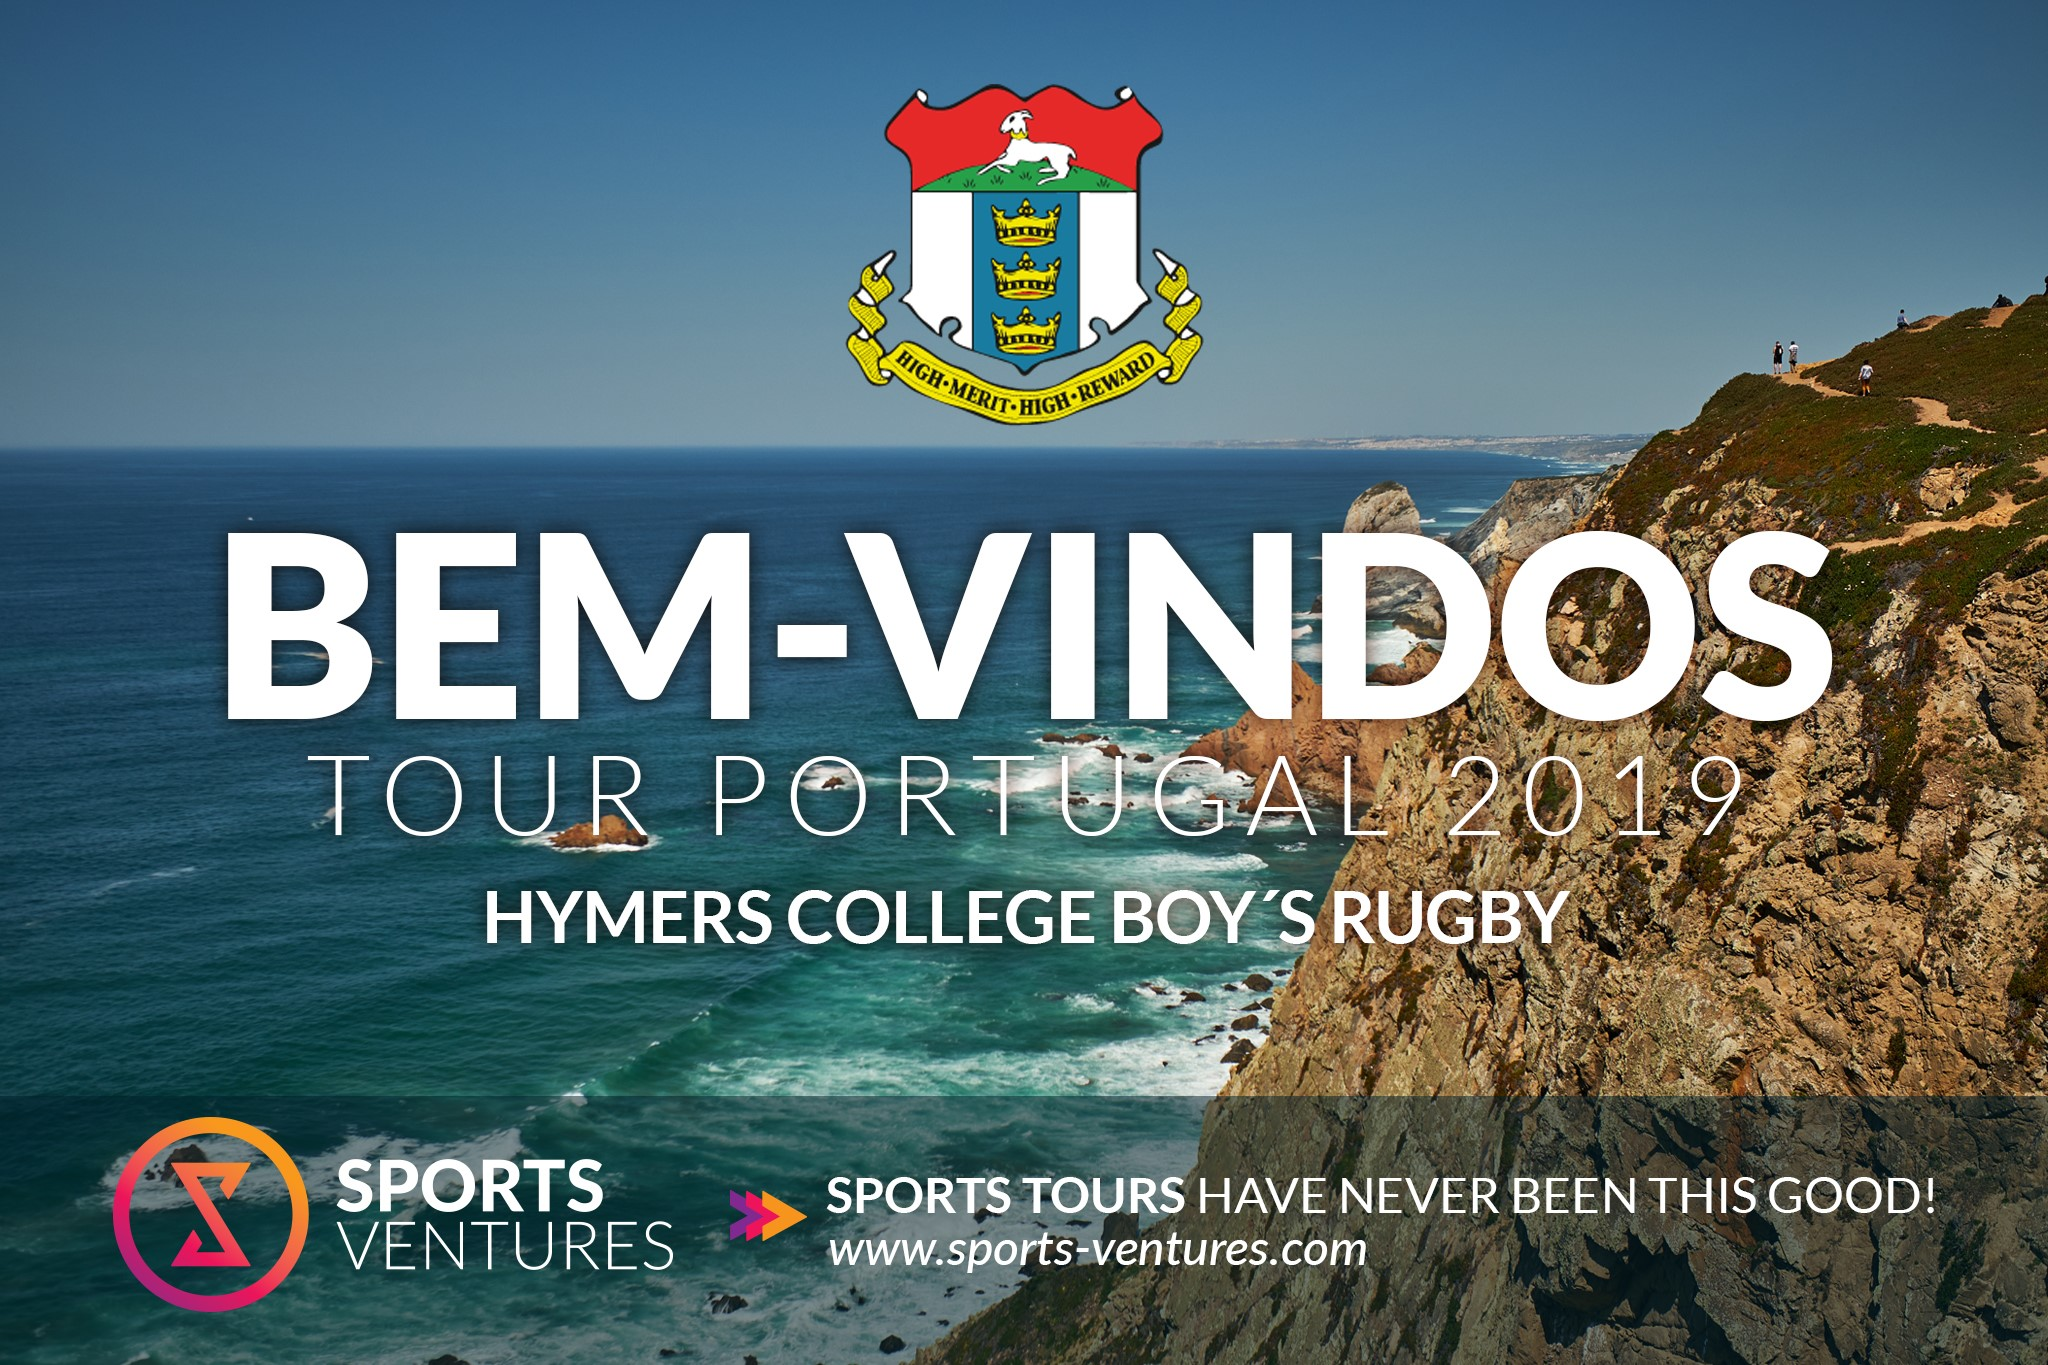 Hymers-School-Rugby-Tour-Portugal-Sports-Ventures